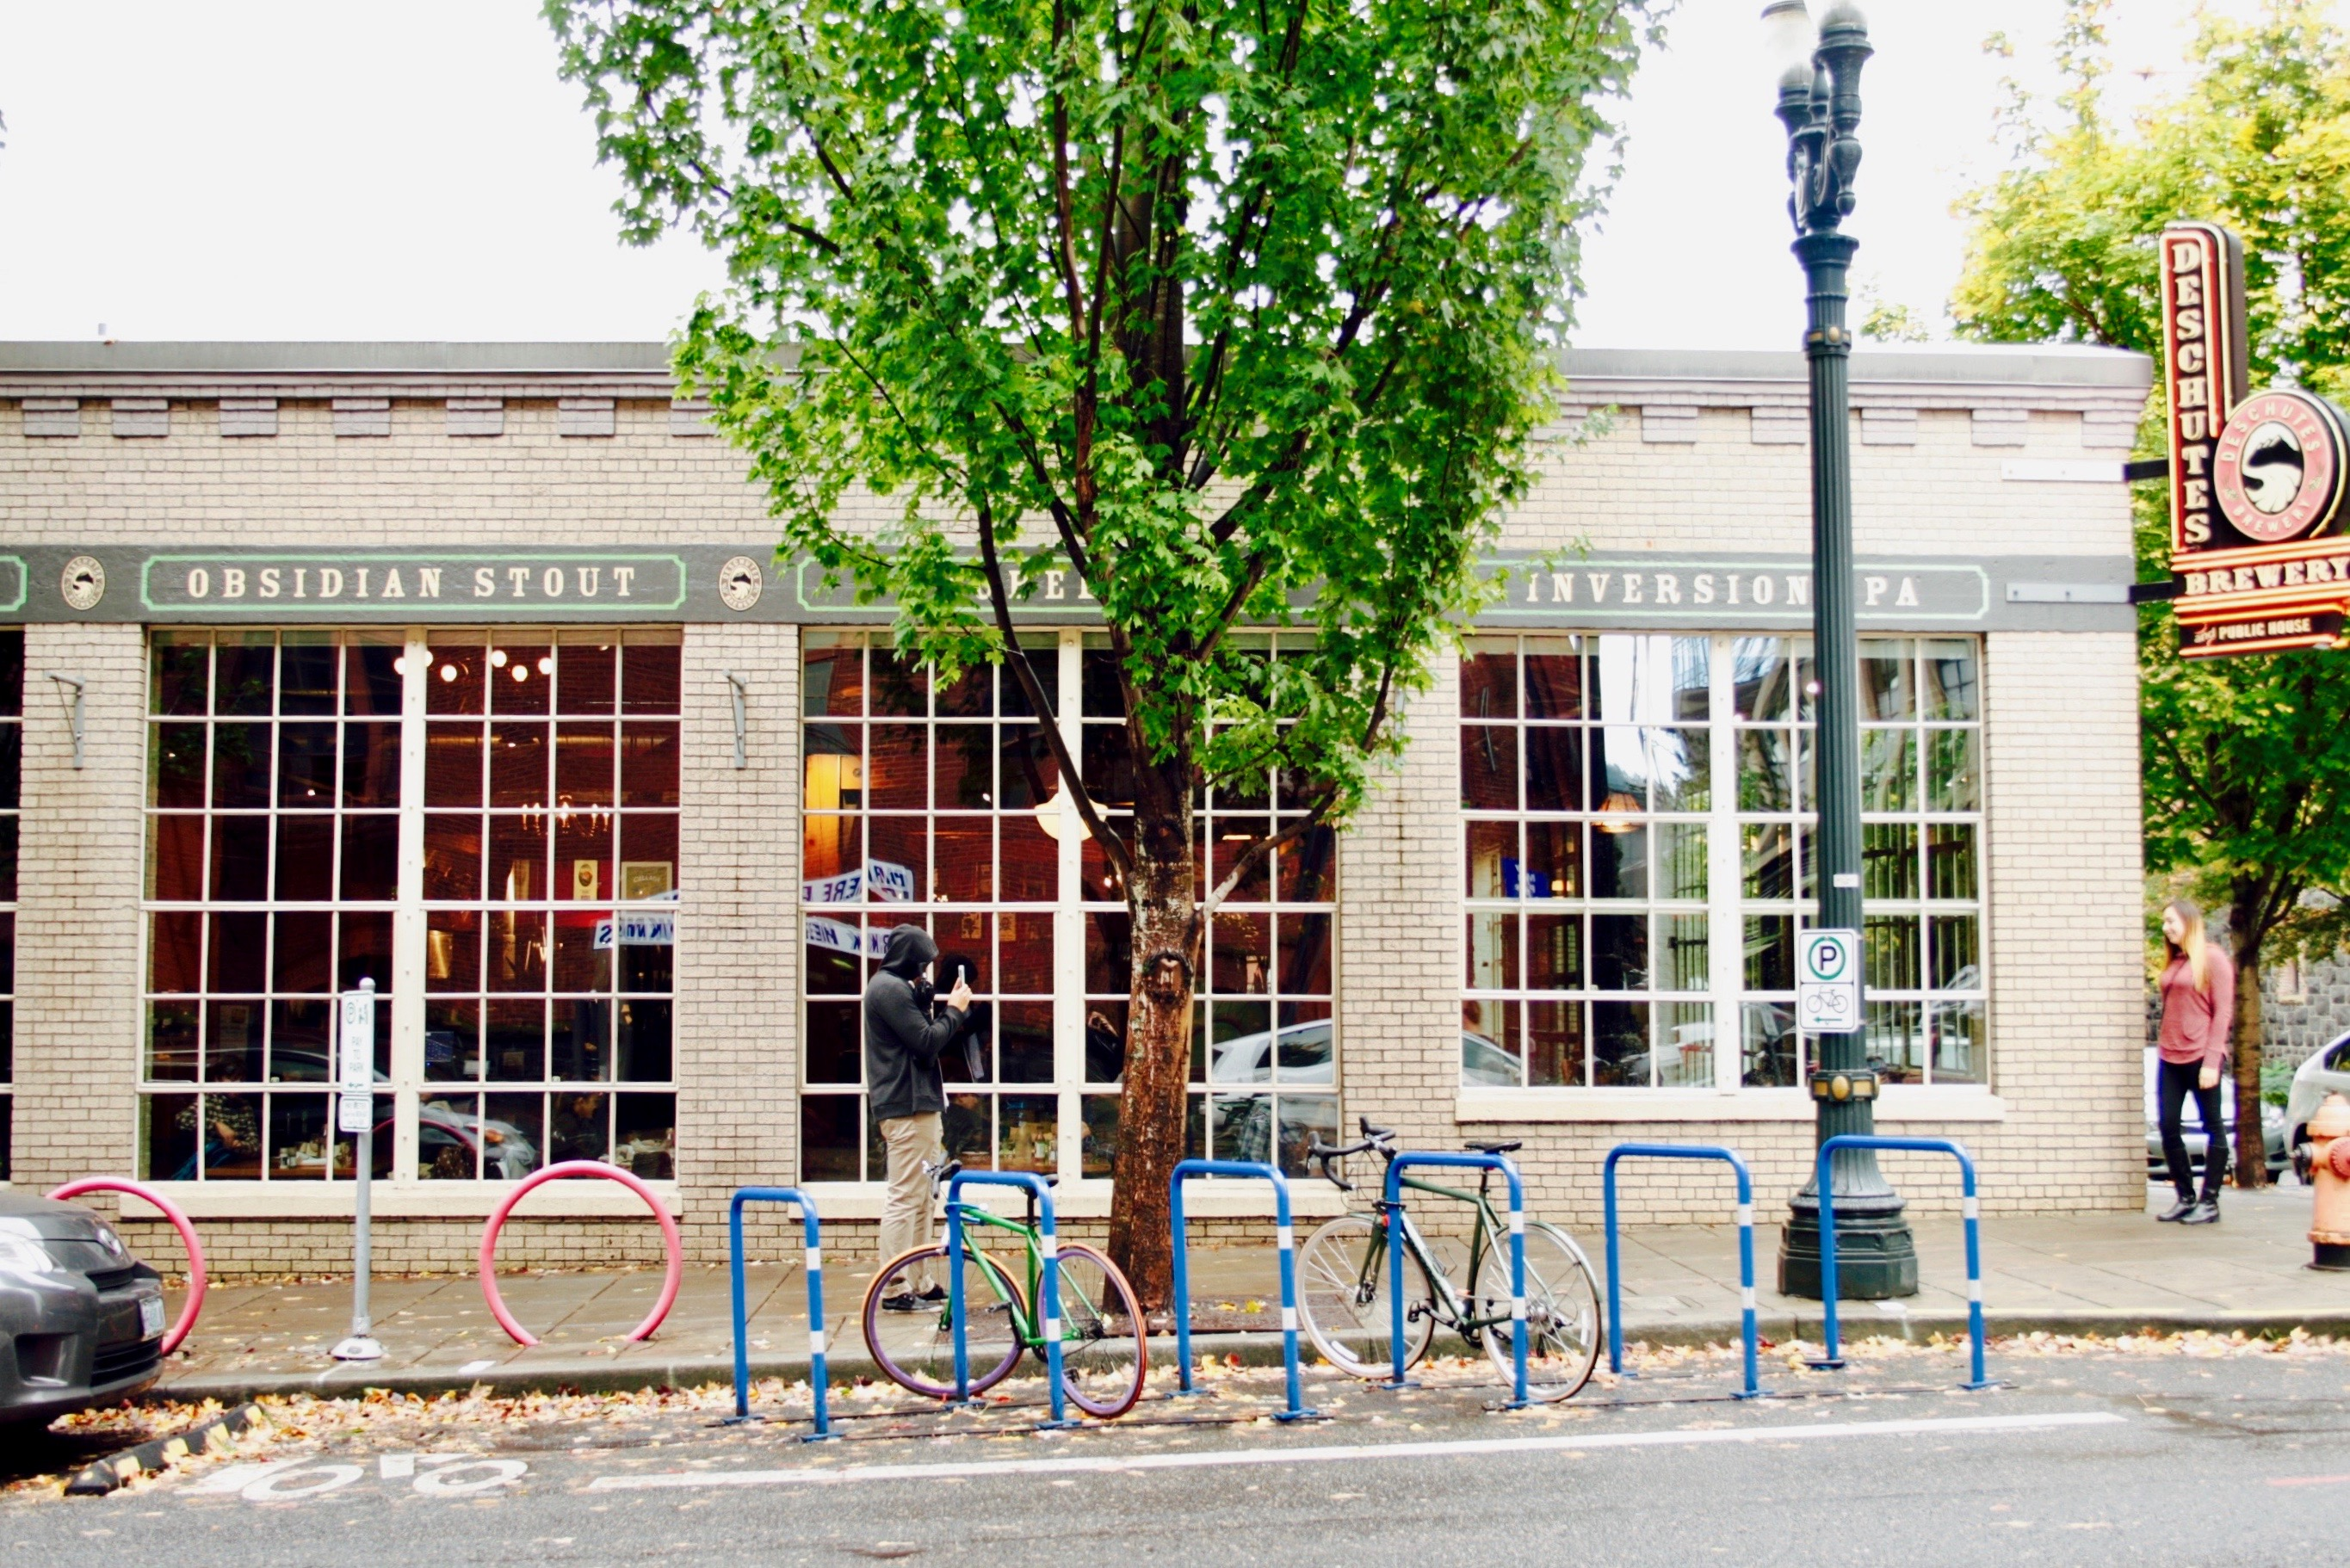 Deschutes Brewery and Public House in Portland, Oregon. (photo by Ryan Spencer)